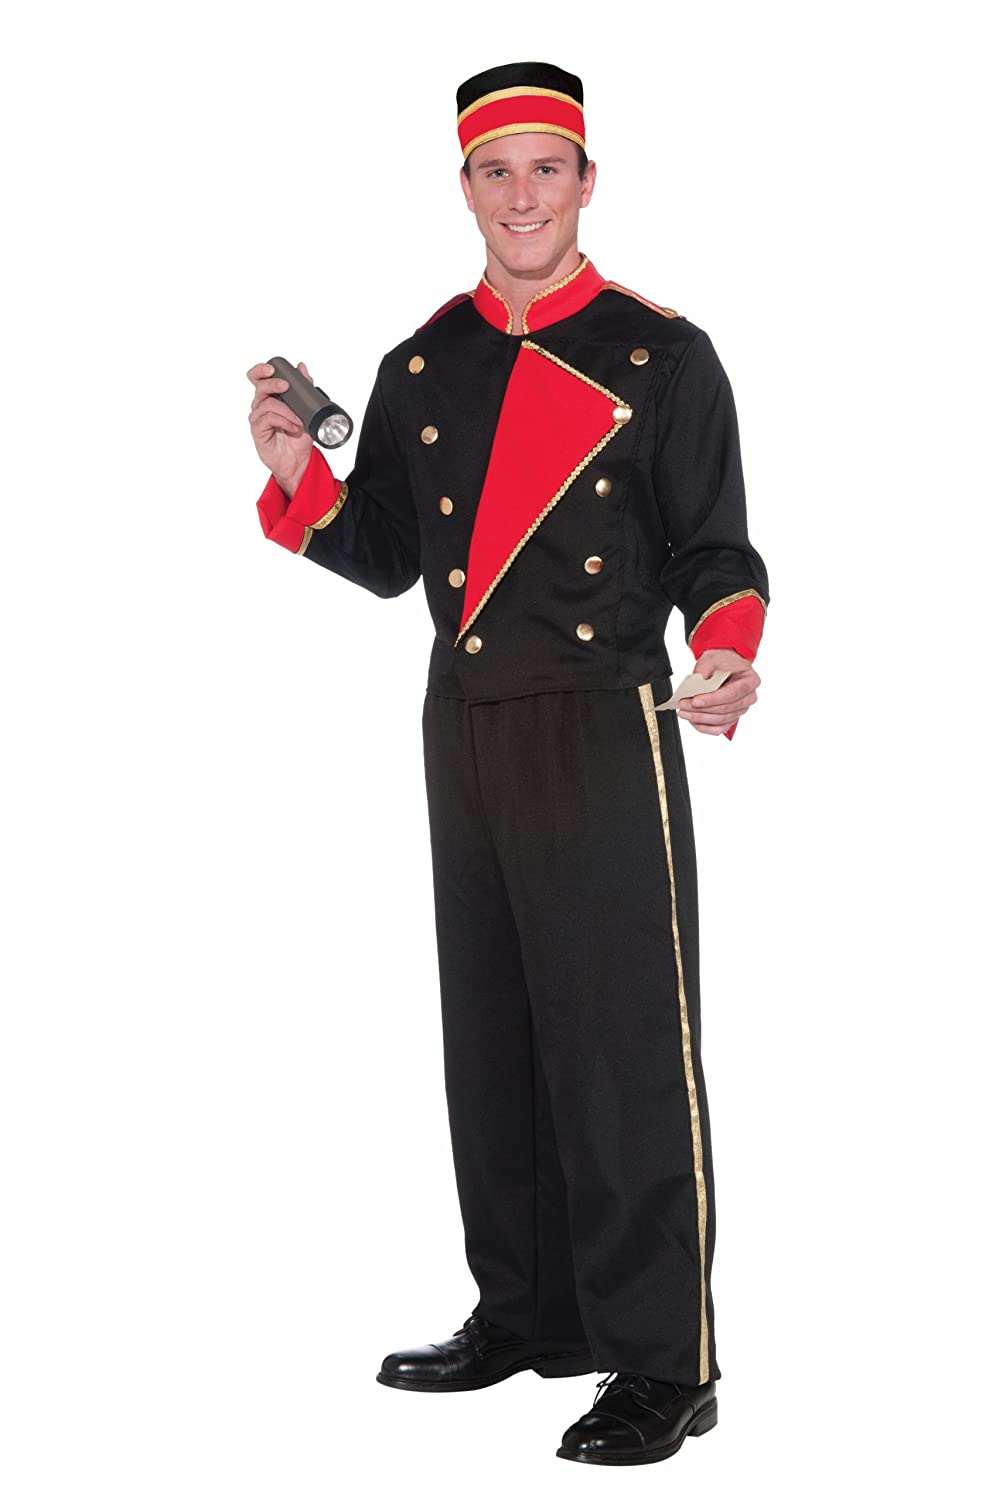 1930s Men's Costumes: Gangster, Clyde Barrow, Mummy, Dracula, Frankenstein  Vintage Hollywood Movie Usher Costume $23.57 AT vintagedancer.com